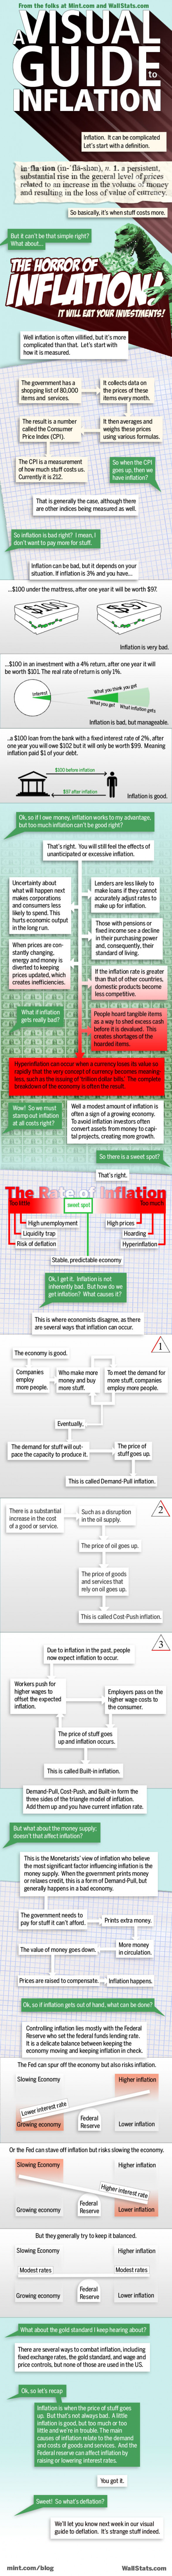 A Visual Guide to Inflation